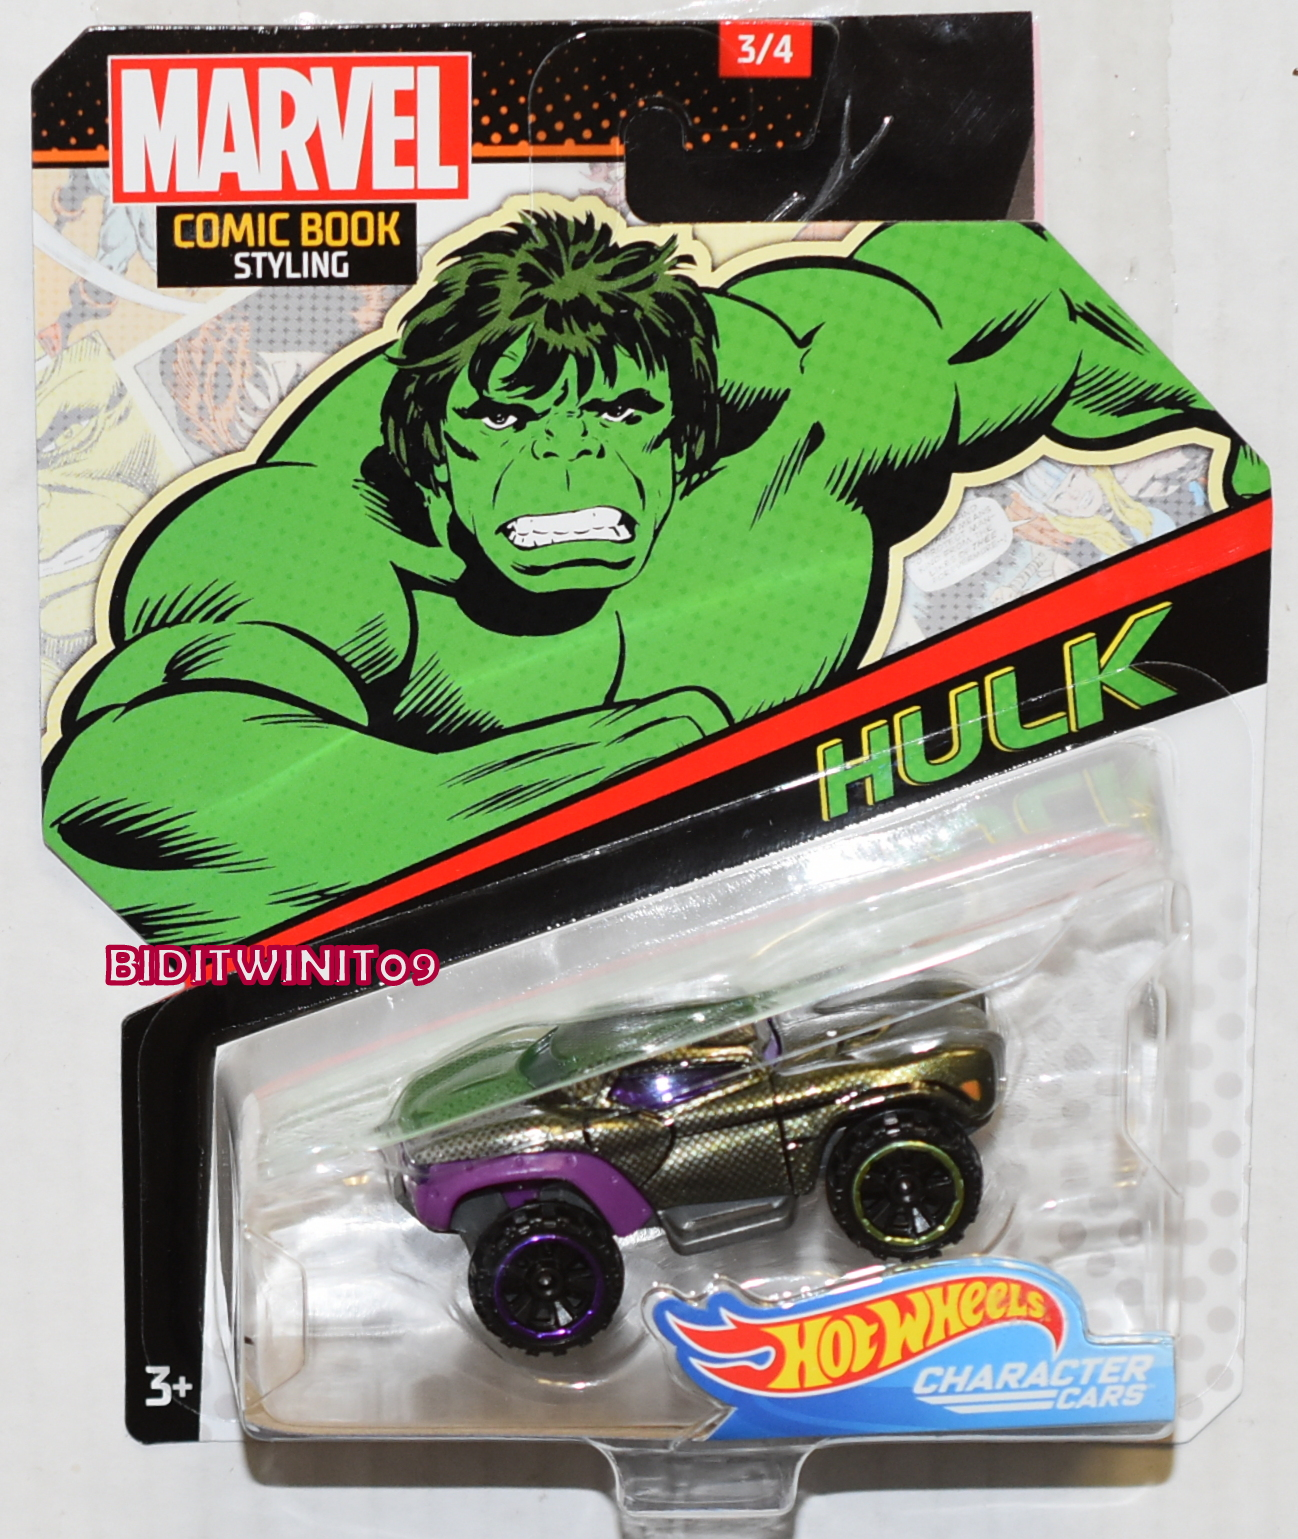 Hot Wheels Marvel Comic Book Styling Hulk Character Cars 0023667 4 42 Biditwinit09 Com Classic Colections